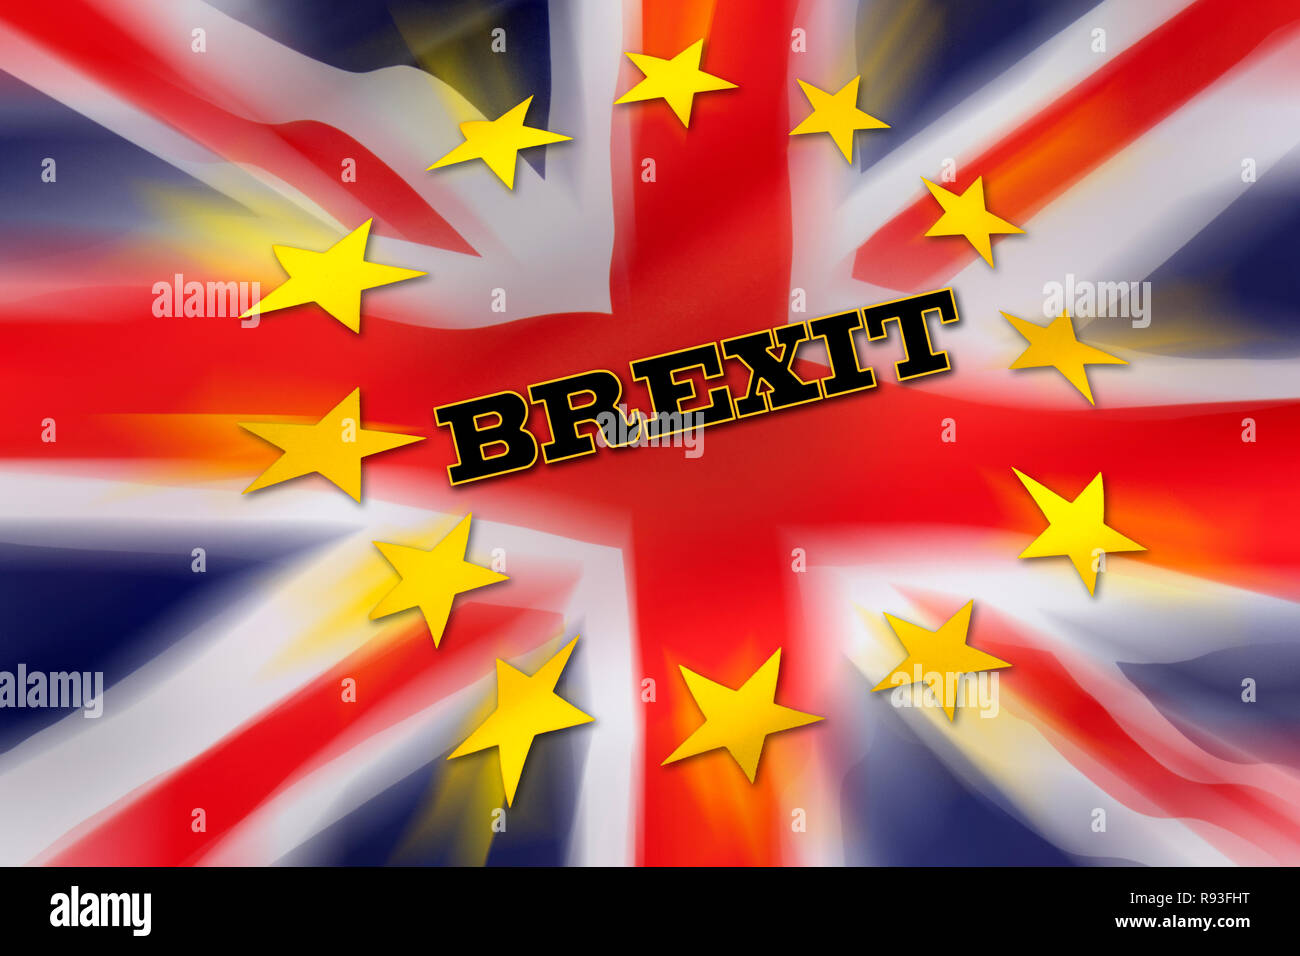 BREXIT - The United Kingdom departs from the European Union. Stock Photo